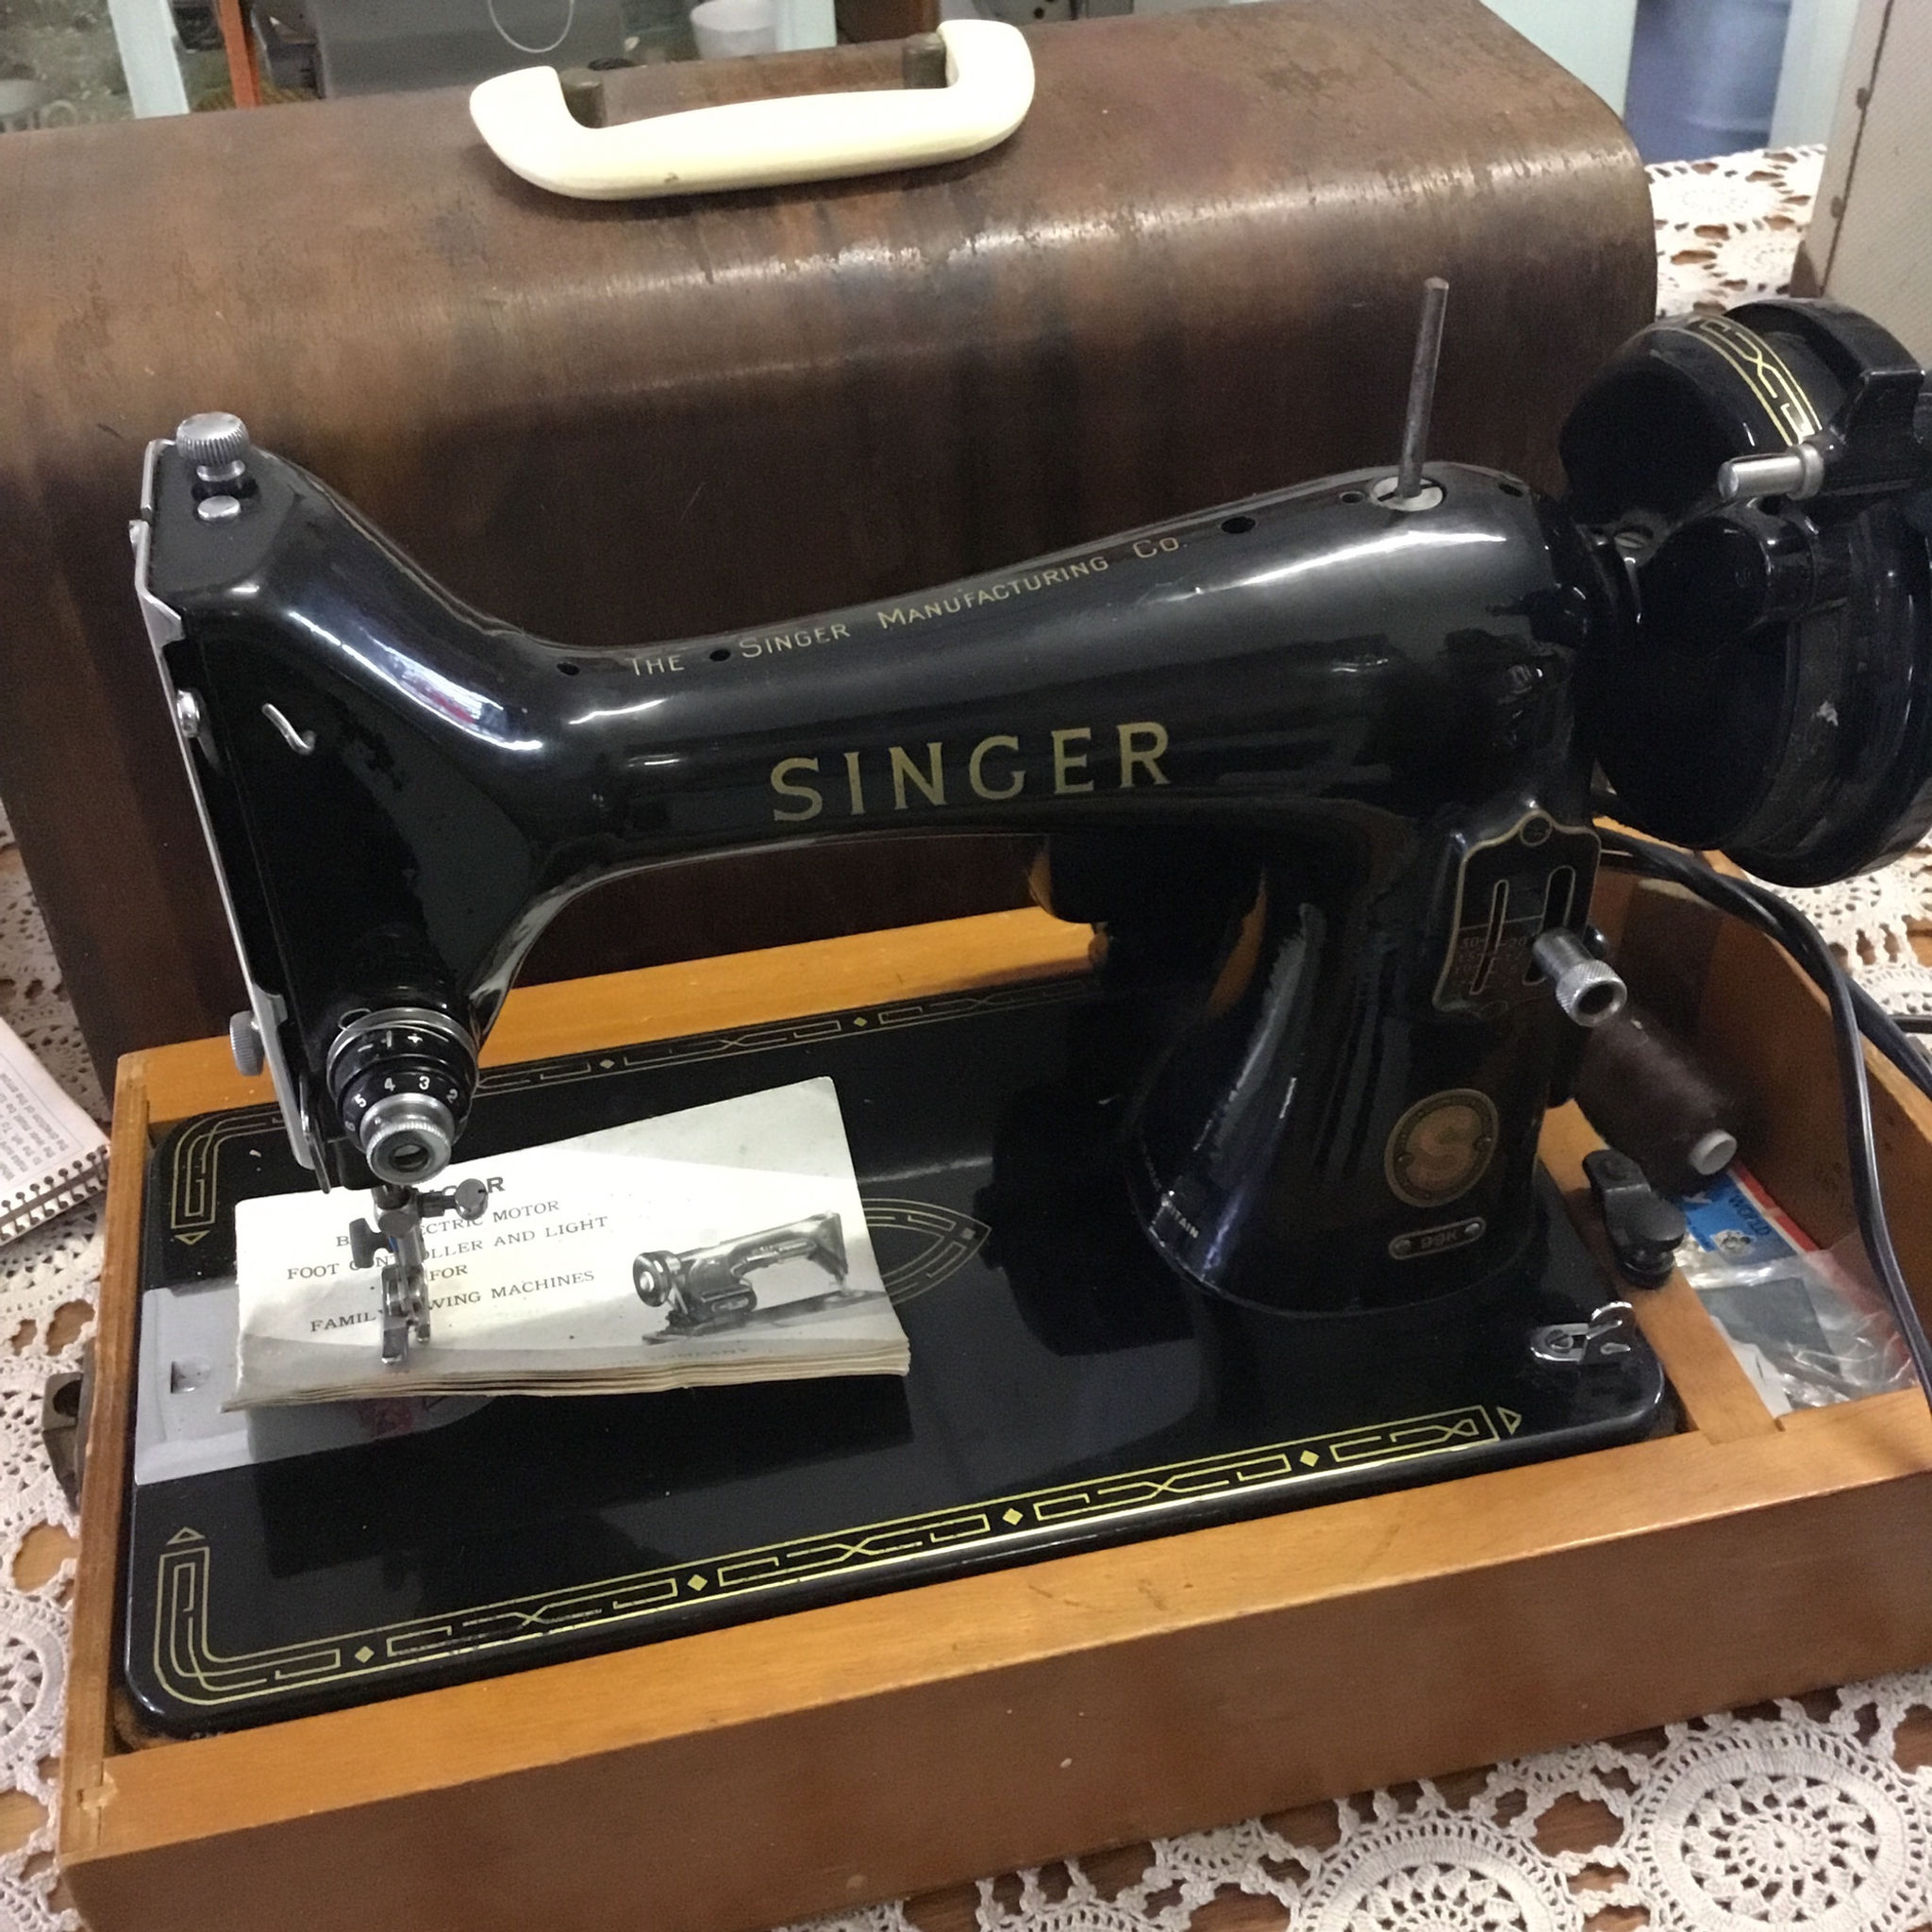 A Singer Sewing Machine And Its Rival 99 K Threading Diagram Founded In 1851 Singers Improved Over Previous Models By Allowing Users To Sew 900 Stitches Per Minute Compared With The 250